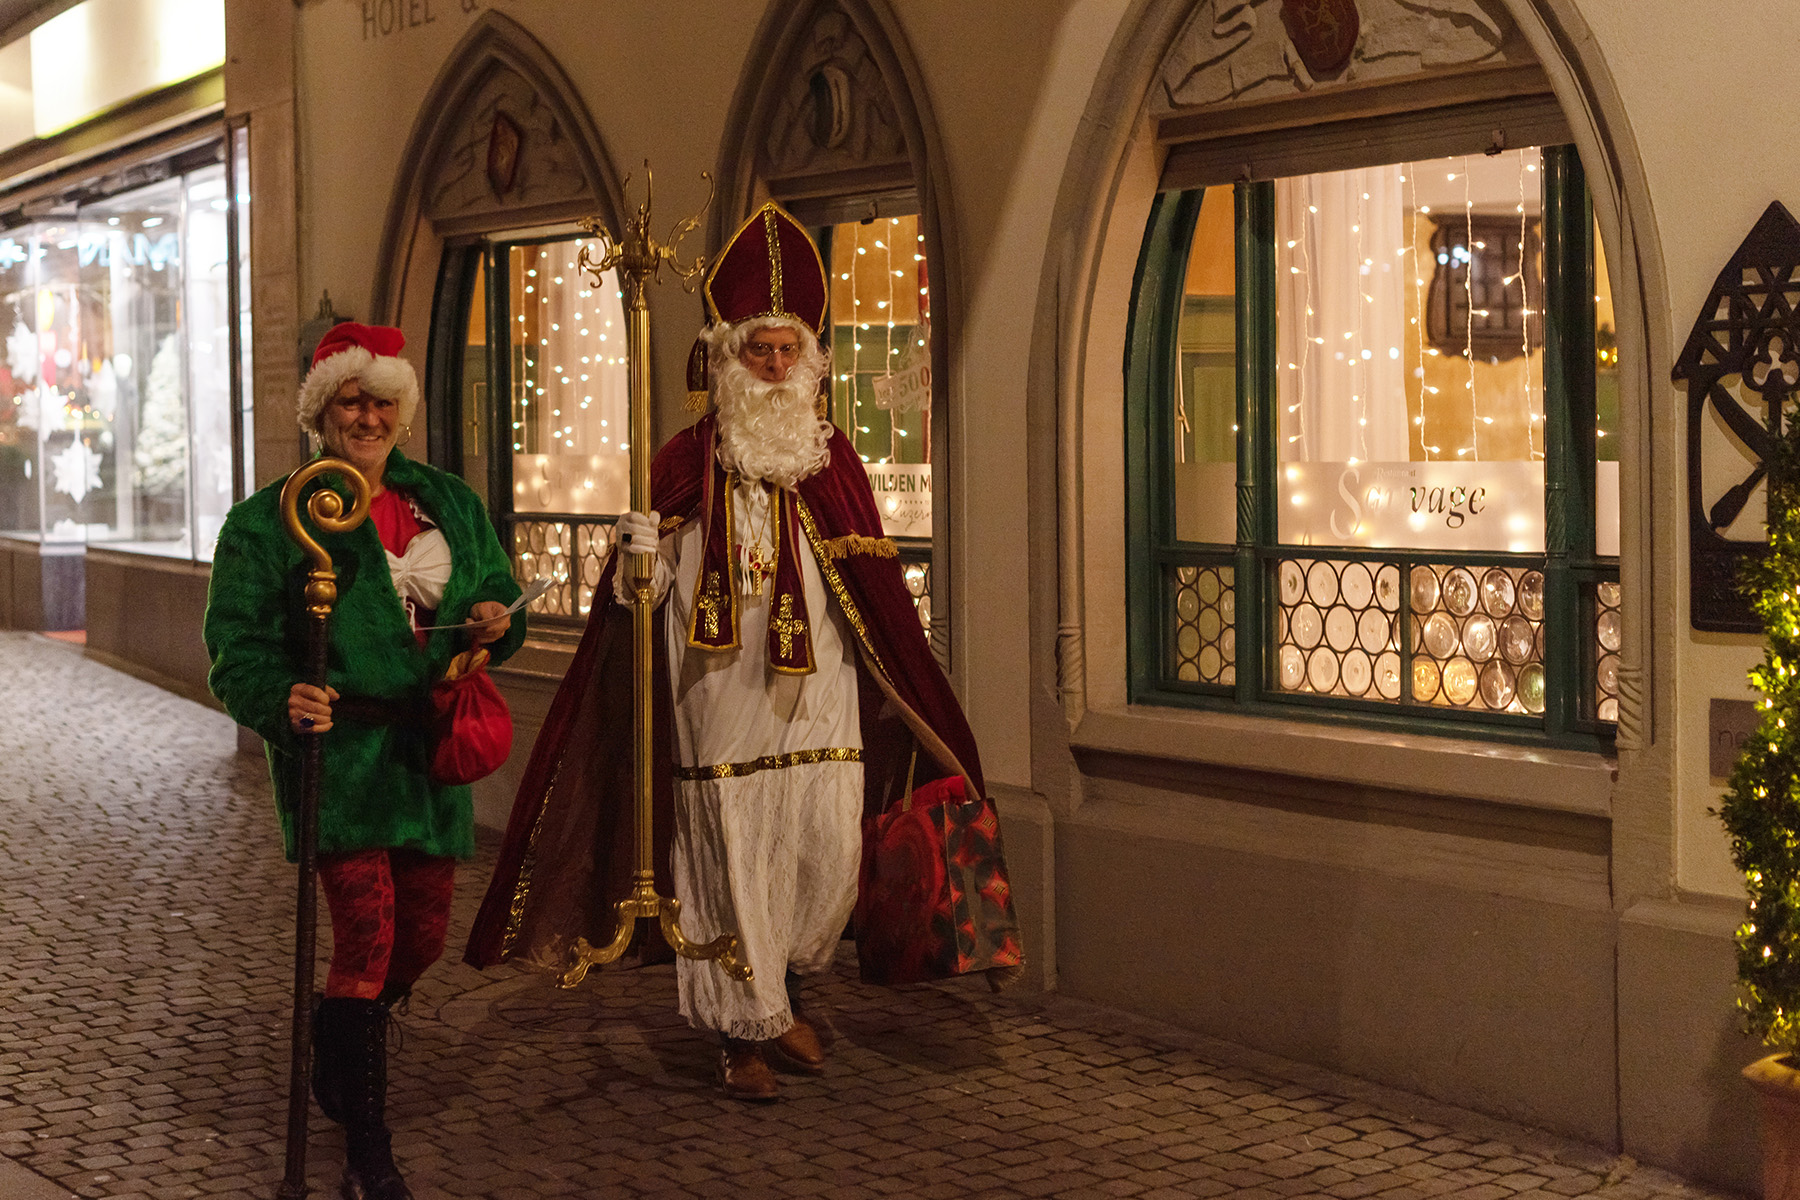 A Swiss Samichlaus roams the streets of Lucerne